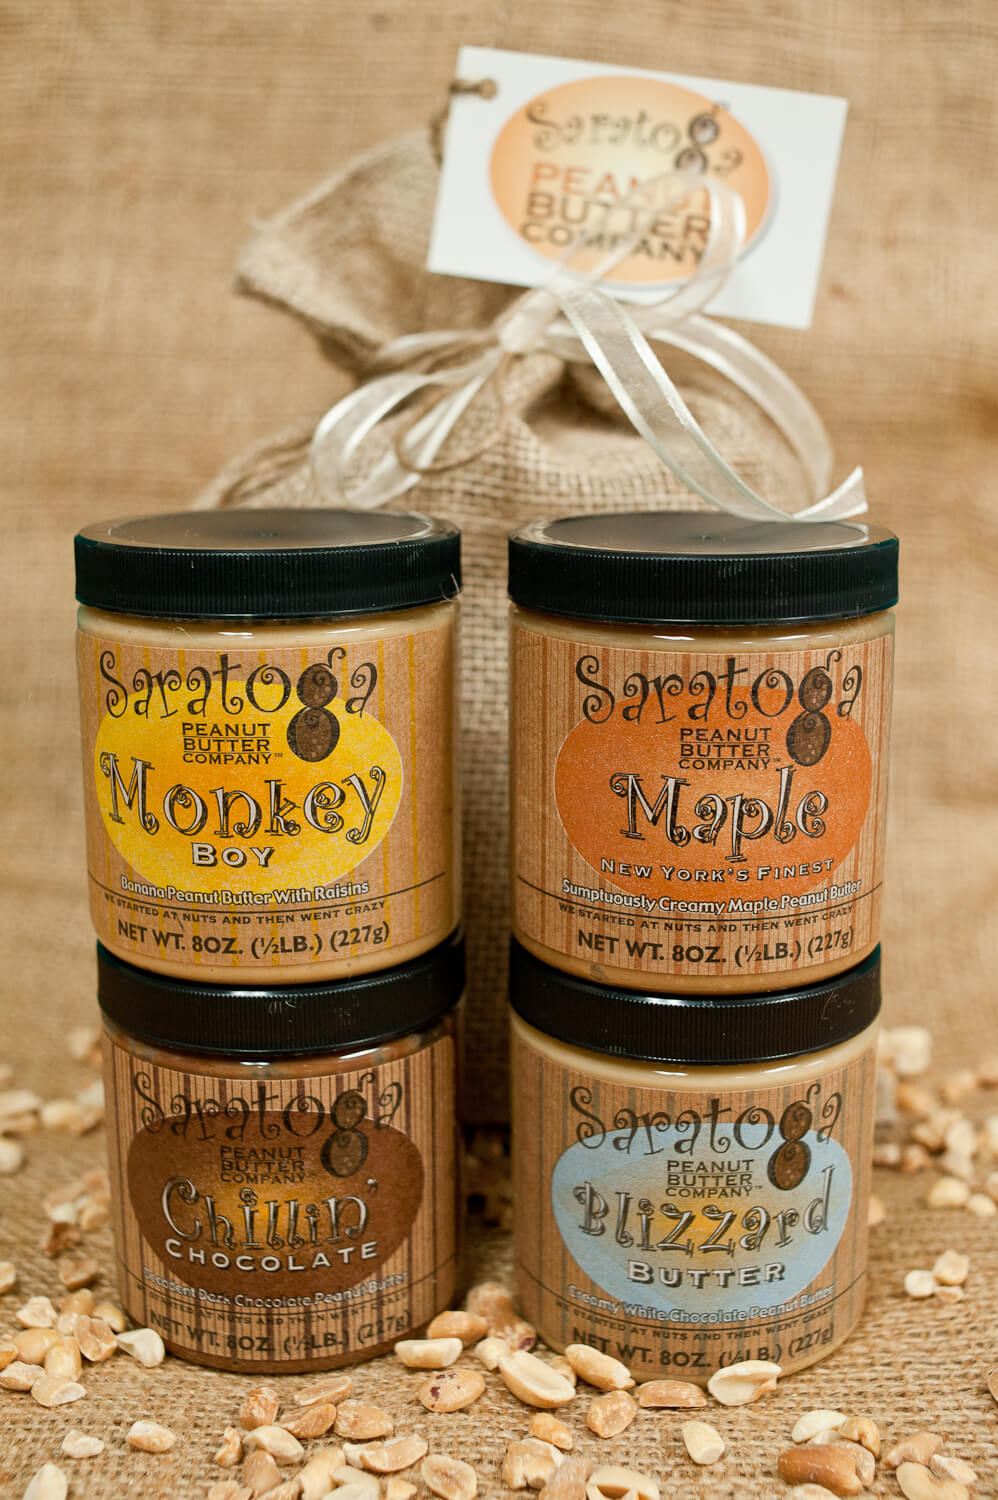 Saratoga Peanut Butter Company, homemade, handmade specialty foods, upstate ny, nut butter, peanut butter, almond butter, chocolate